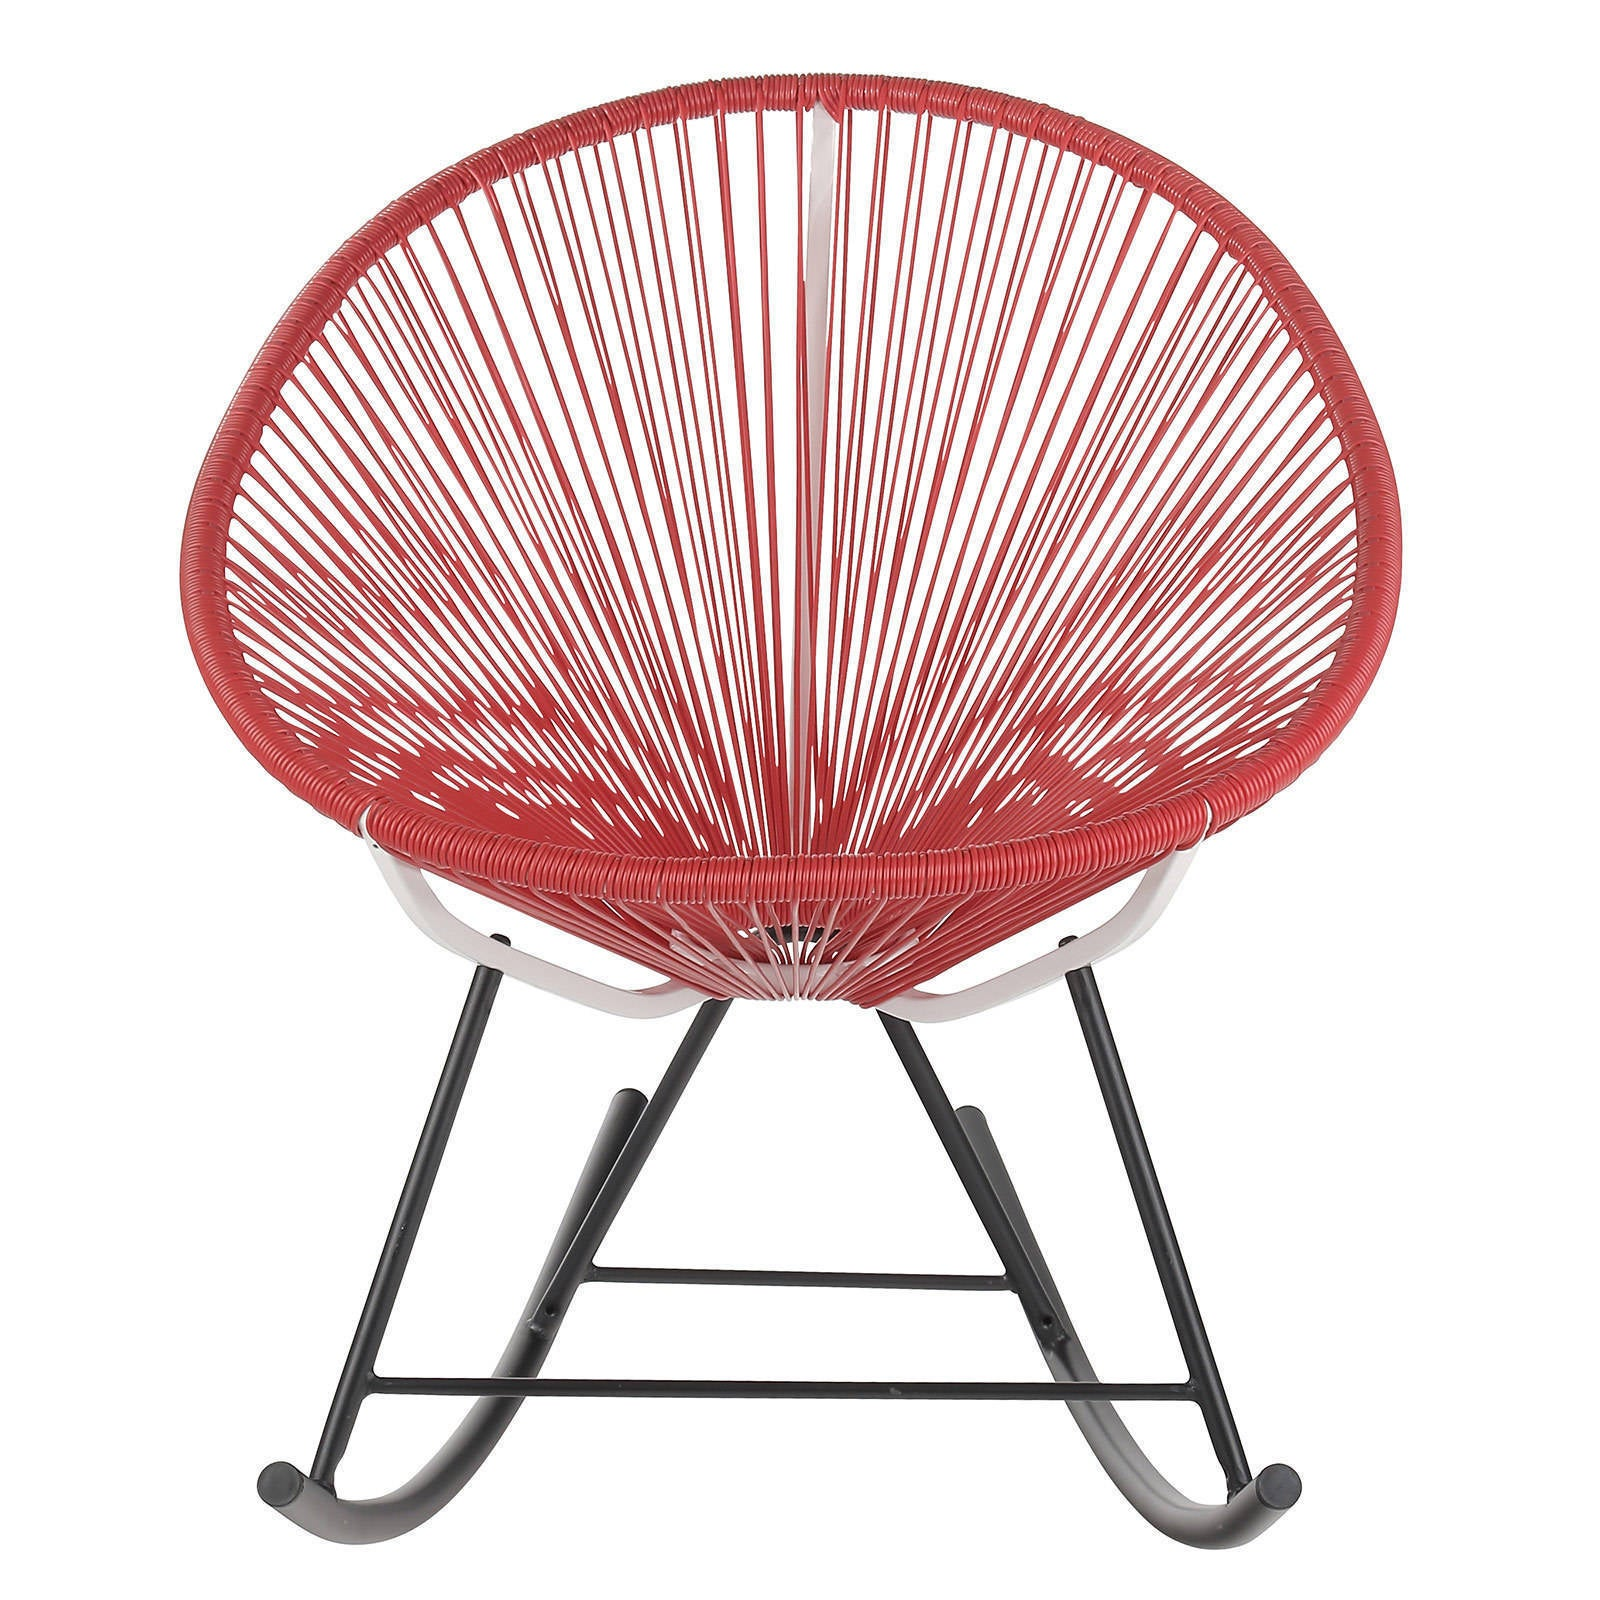 woven metal furniture. Acapulco Woven Basket Rocking Chair - Ships To Canada Overstock 21562197 Metal Furniture U